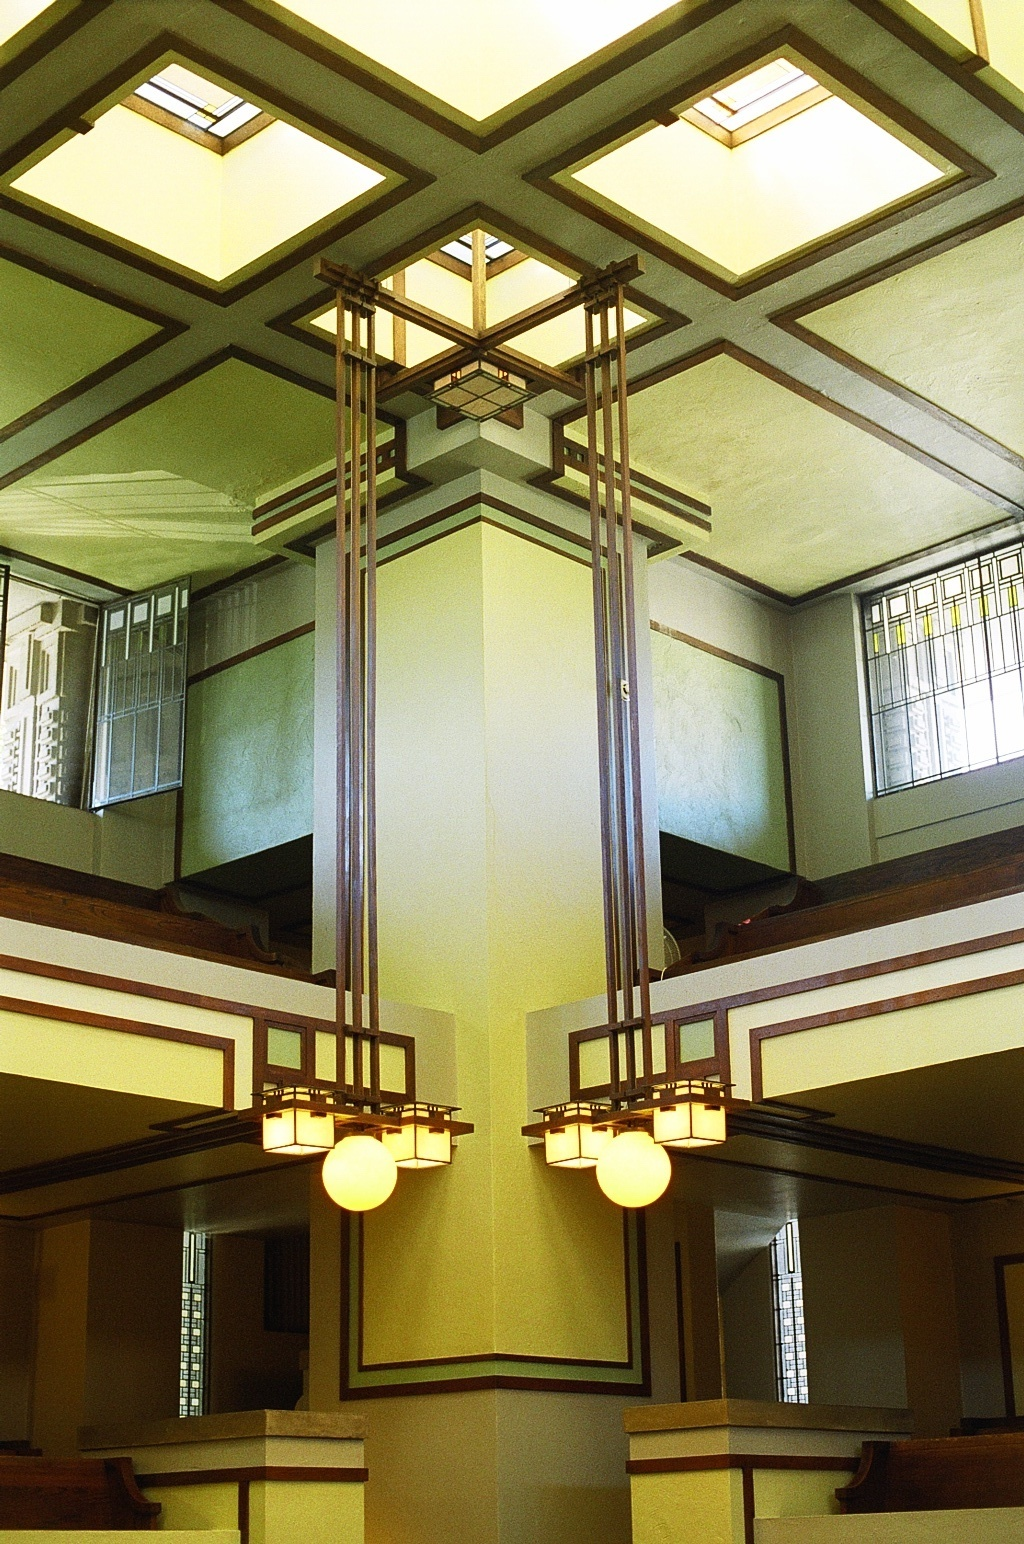 Unity Temple's gorgeous interior—built between 1905 and 1908—prior to the current renovation. Photo via Wikimedia Commons.